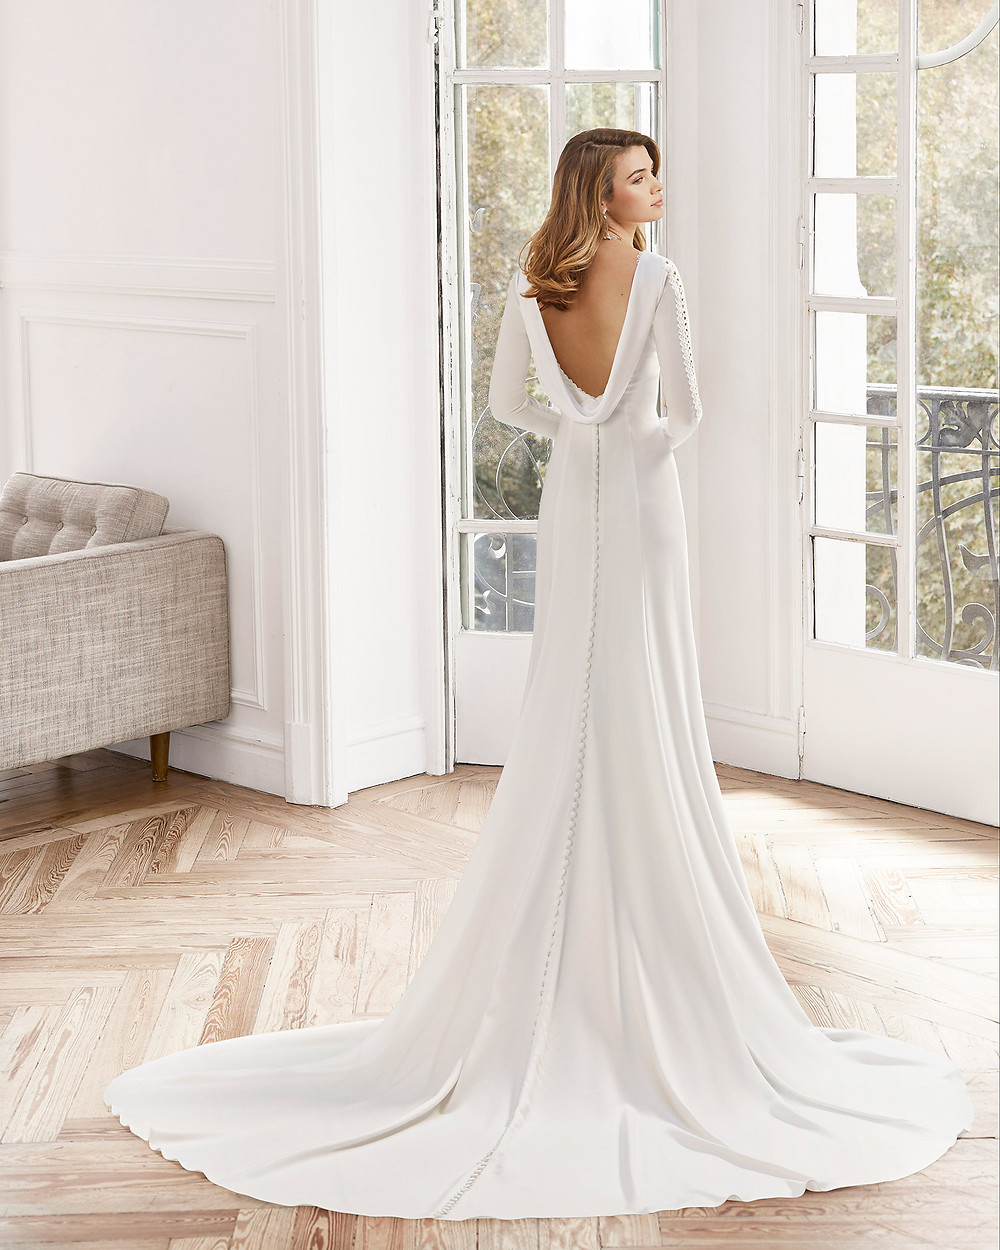 An Aire Barcelona 2020 simple crepe A-line wedding dress with a cowl back